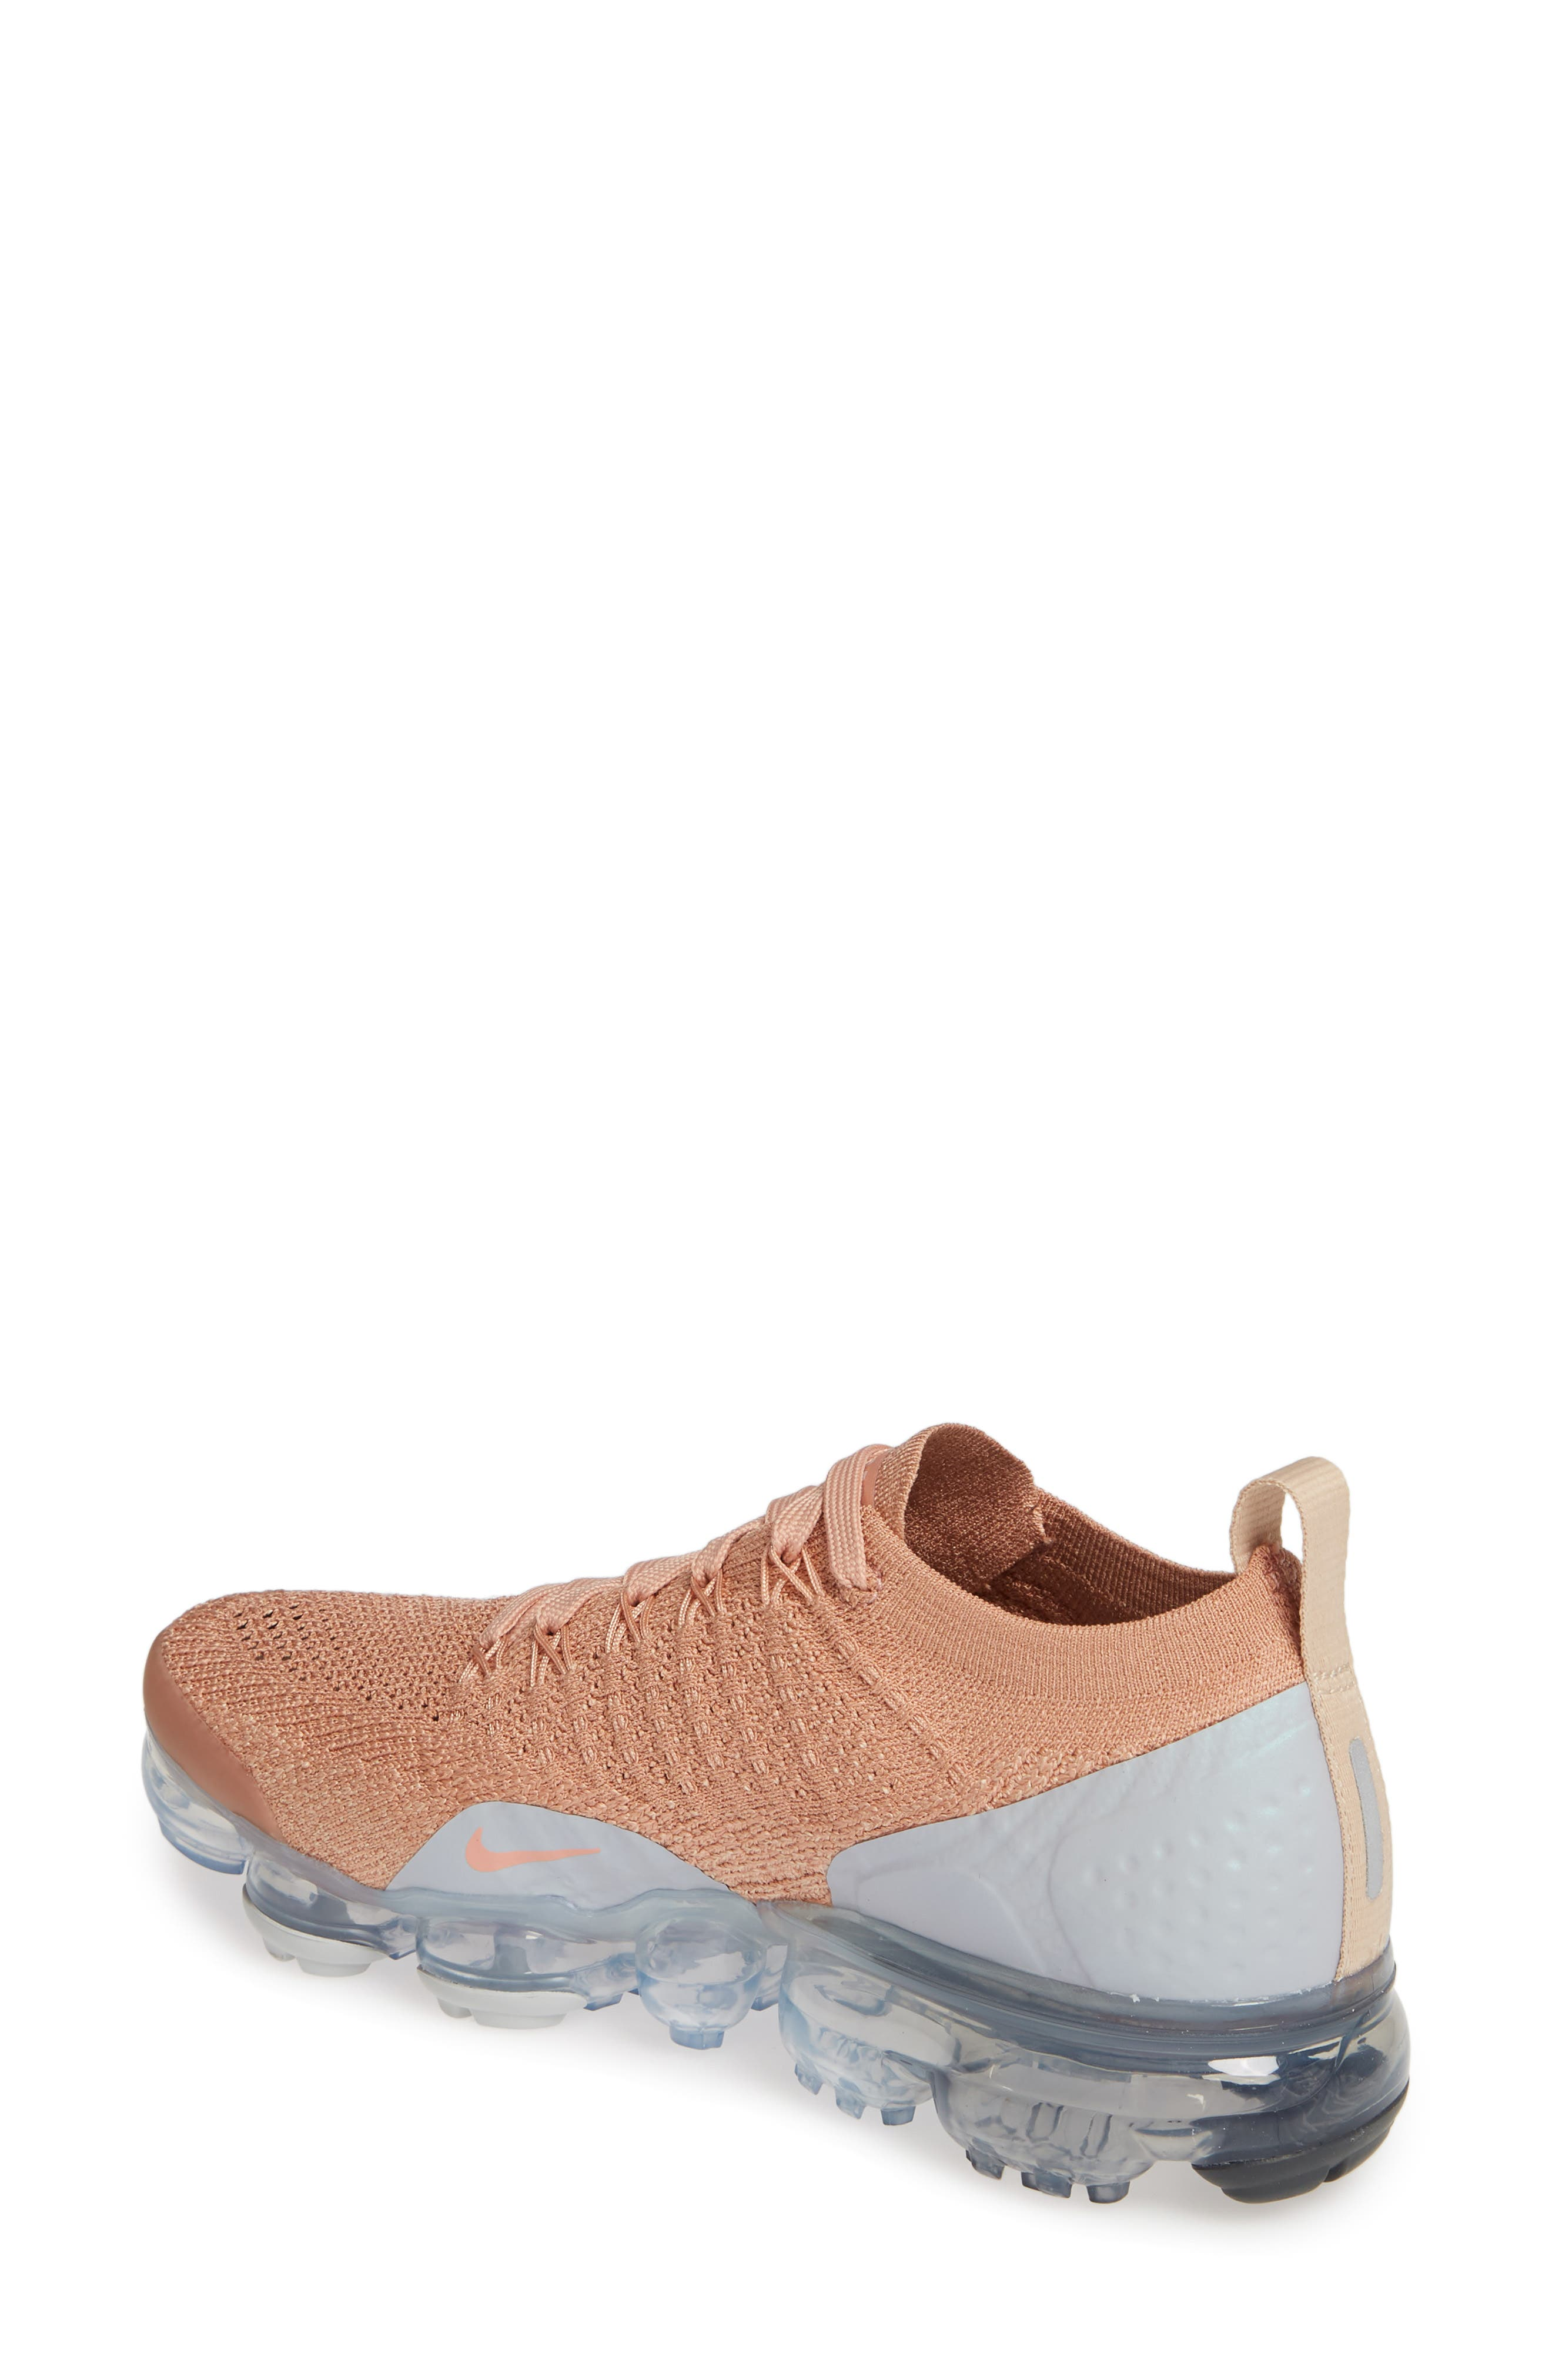 NIKE, Air VaporMax Flyknit 2 Running Shoe, Alternate thumbnail 2, color, ROSE GOLD/ BIO BEIGE